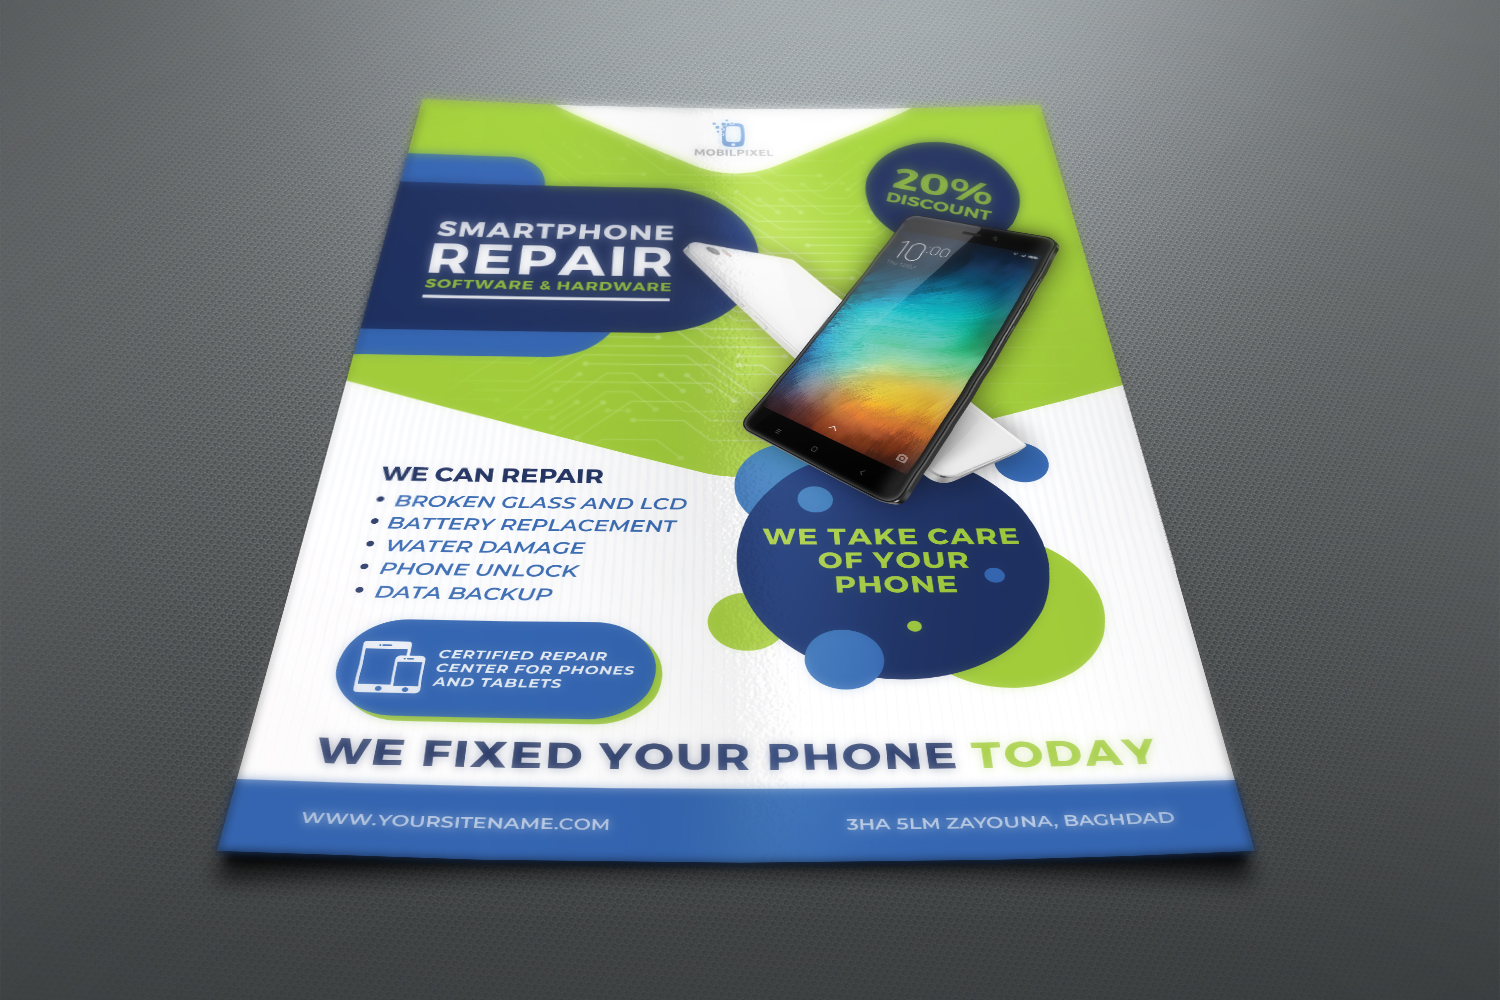 Smartphone Repair Service Flyer Template example image 2